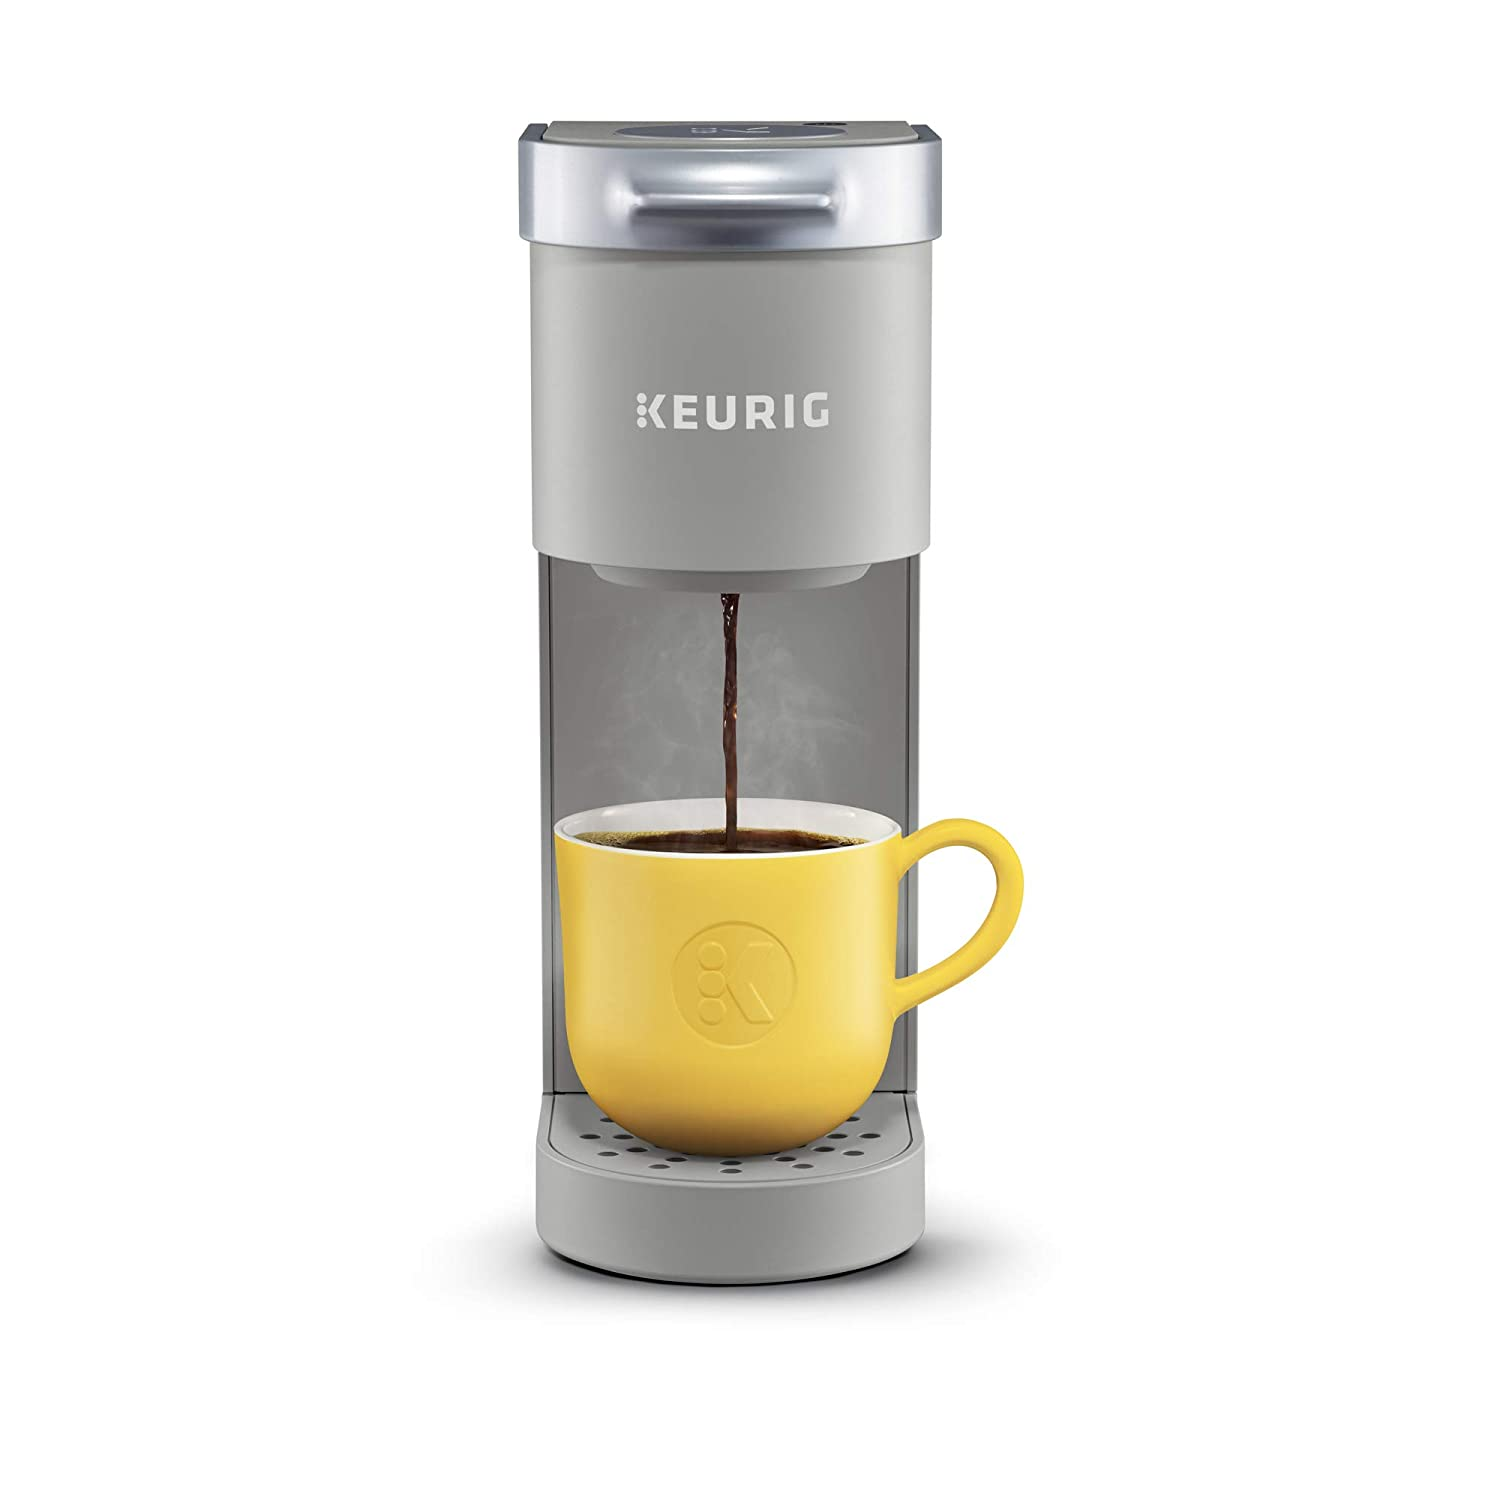 Keurig K-Mini Single Serve Coffee Maker, Studio Gray